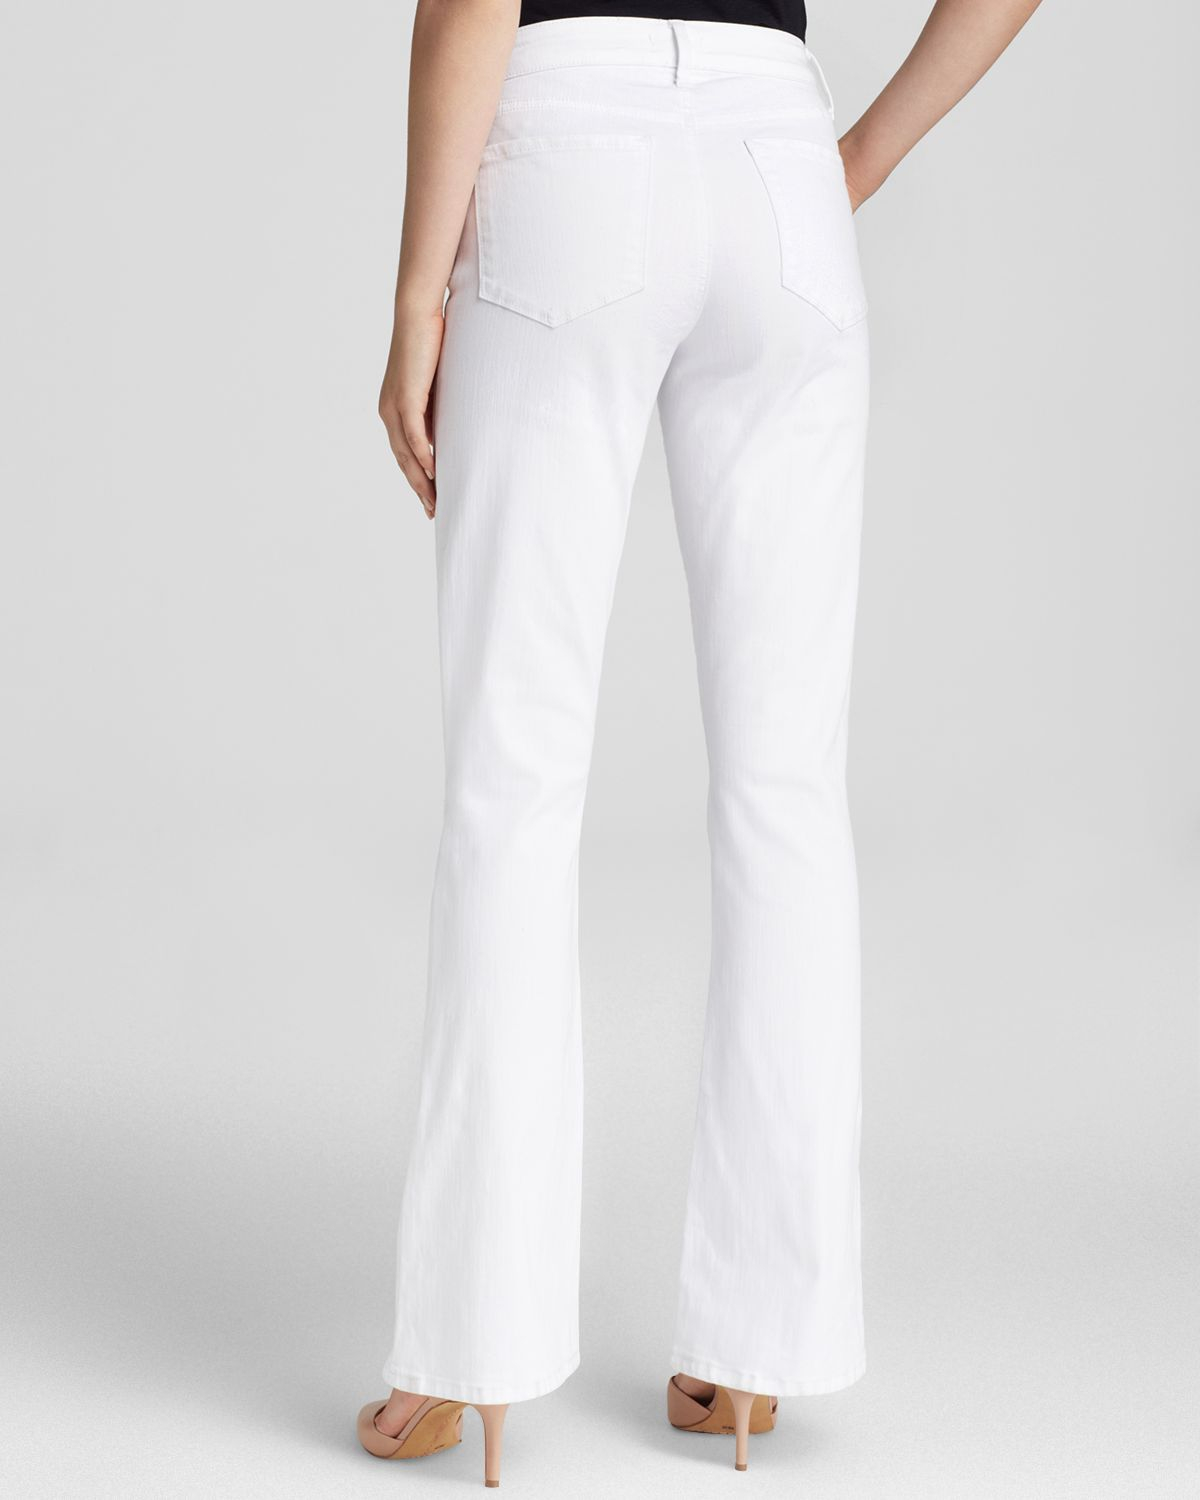 Nydj Flare Leg Jeans In Optic White - Bloomingdale's Exclusive in ...